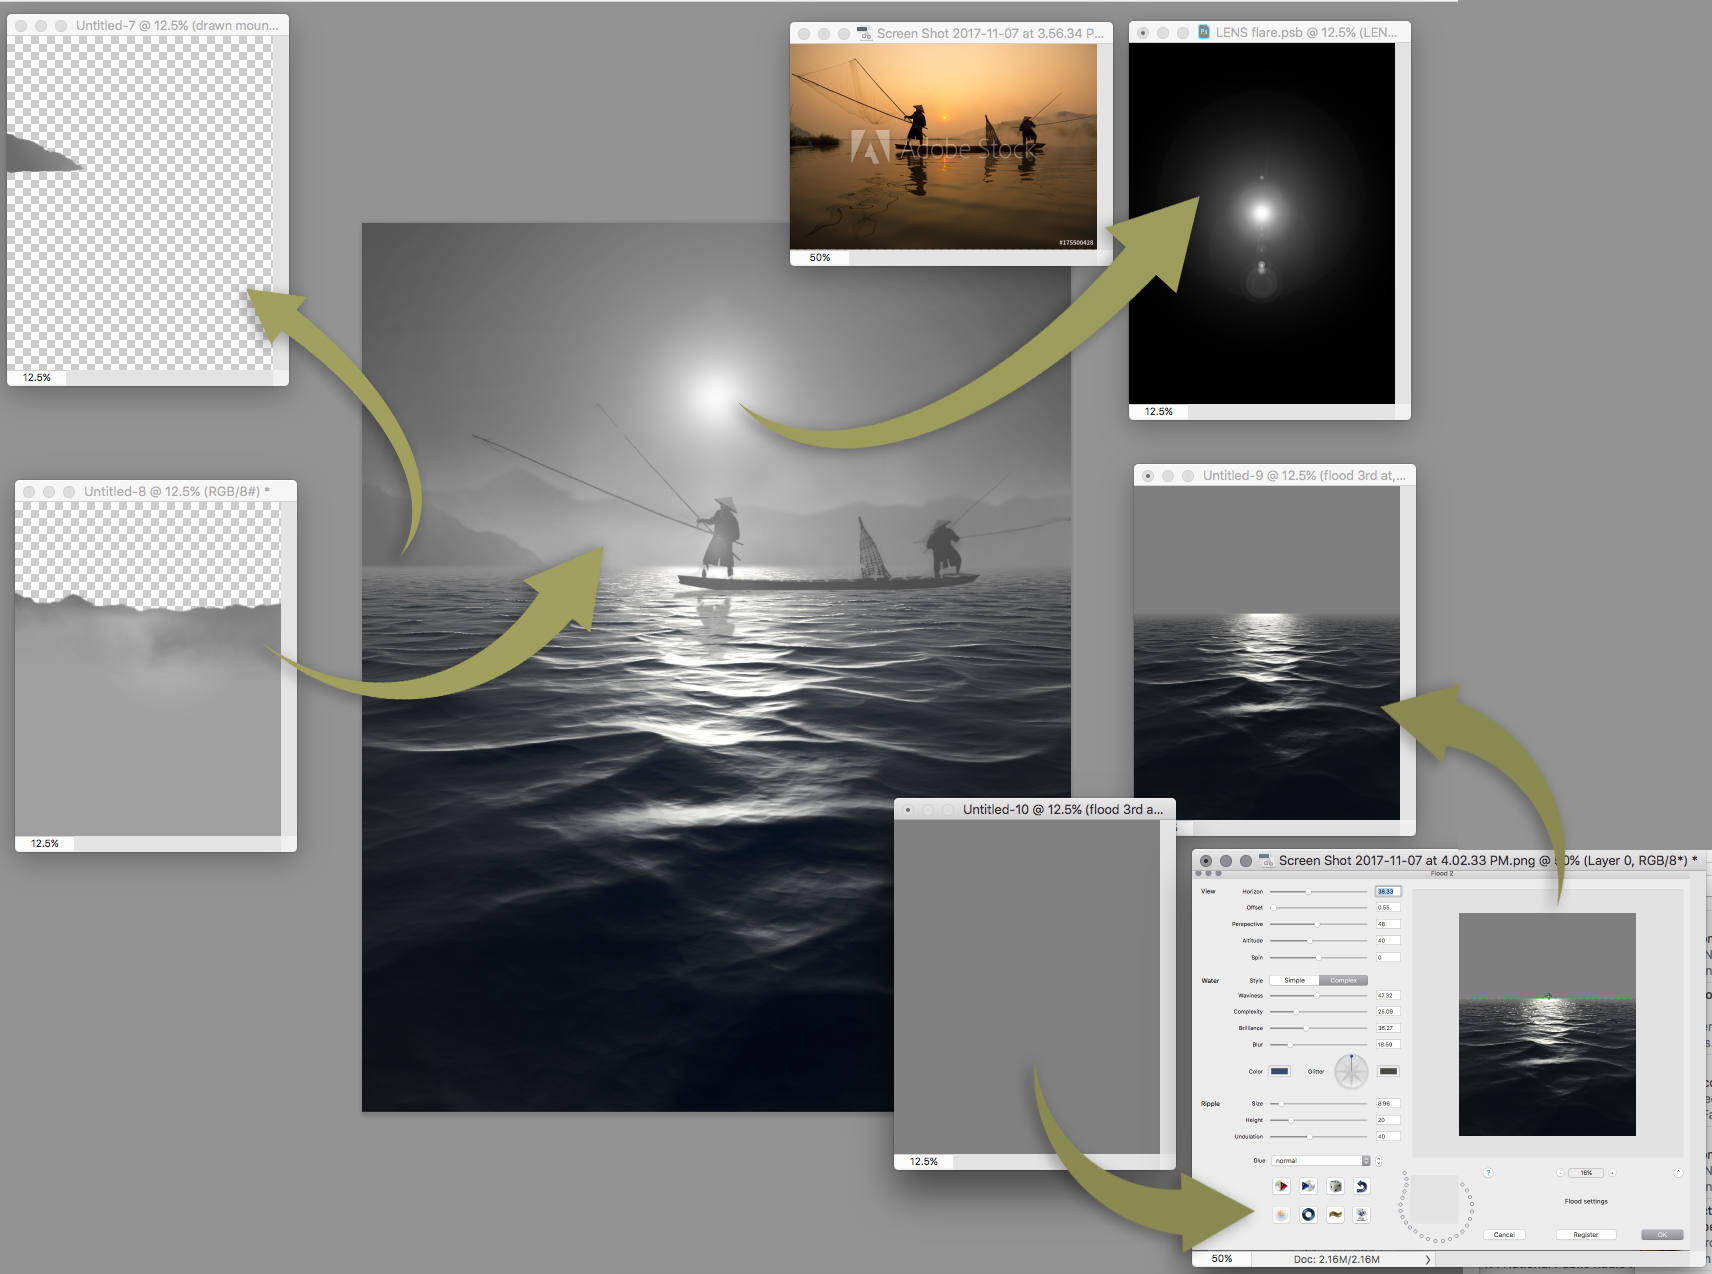 Mastering Photoshop gives you full creative control over your imagery. On the CreativeLive blog Lisa Carney shares essential tips for improving your Photoshop workflow.